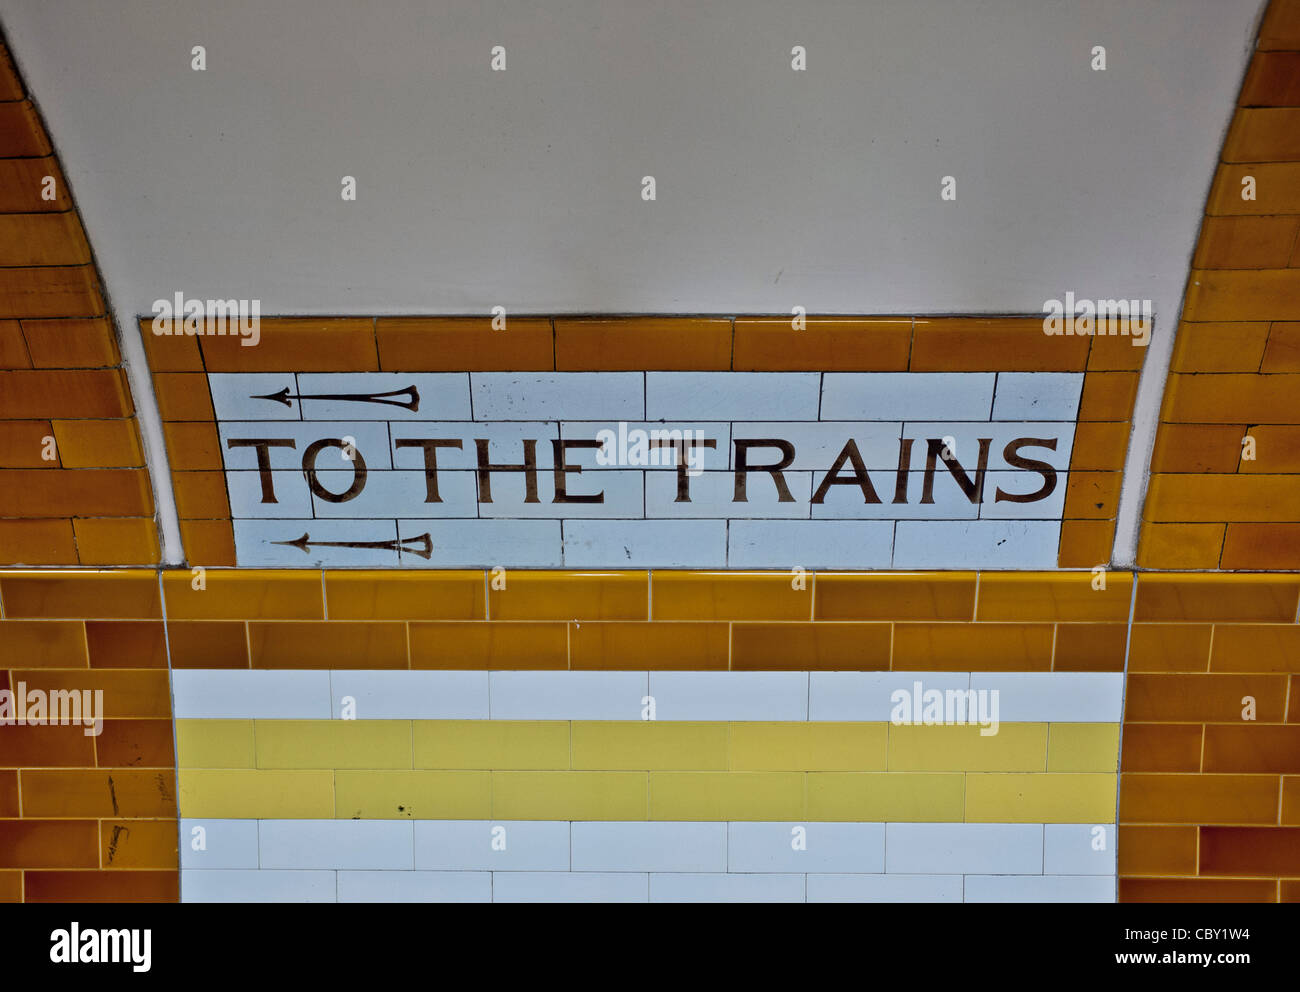 To the Trains sign on london underground - Stock Image